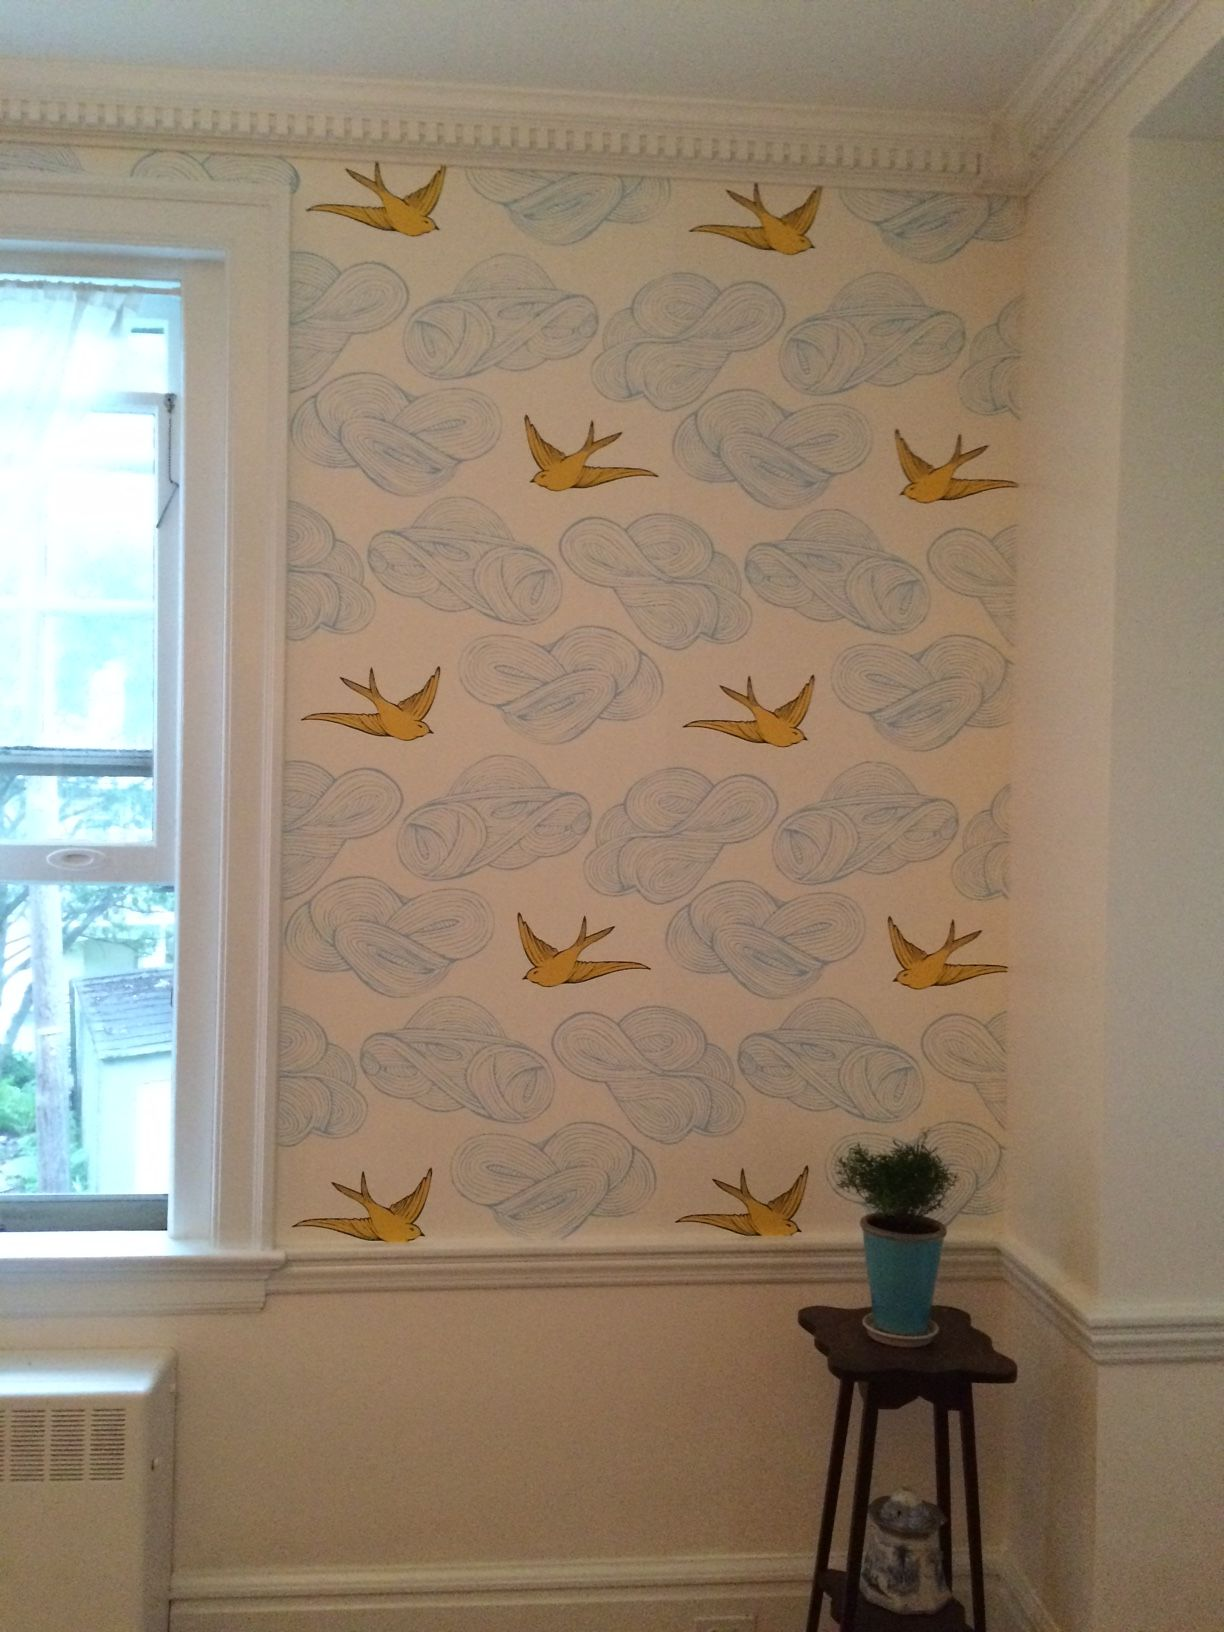 Finally finished my first ever DIY wallpaper project